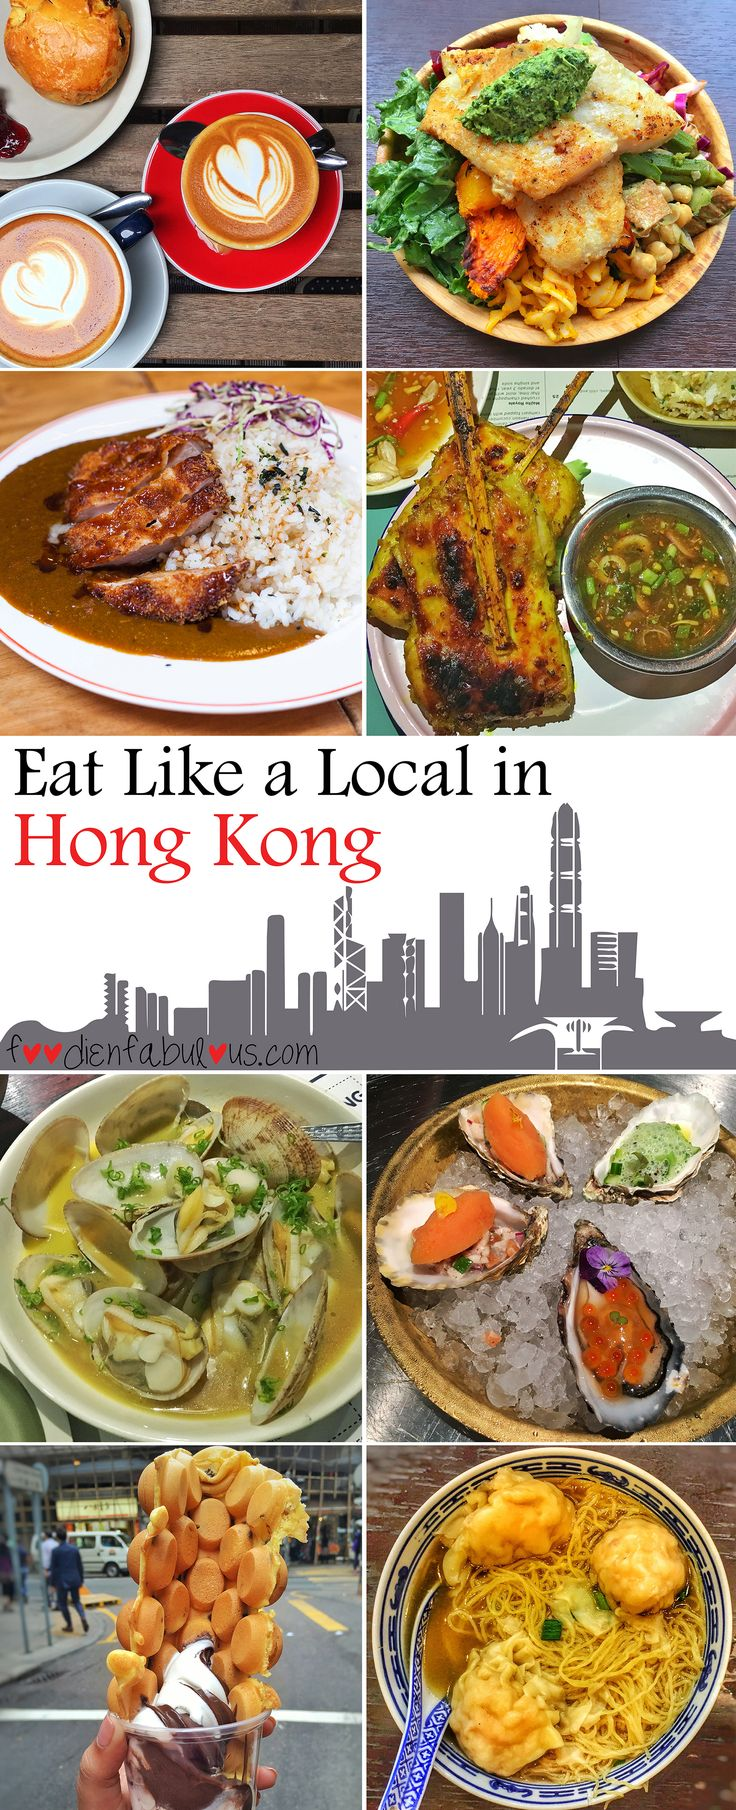 Eating Out In Hong Kong Dishing out some of Hong Kong's best eats - from noodles and dim sums to popular hot spots of some of the best food the city has to offer so you can eat as the locals do. An incredible coffee culture means you'll be fuelled up for all the walking around in this chaotic city.